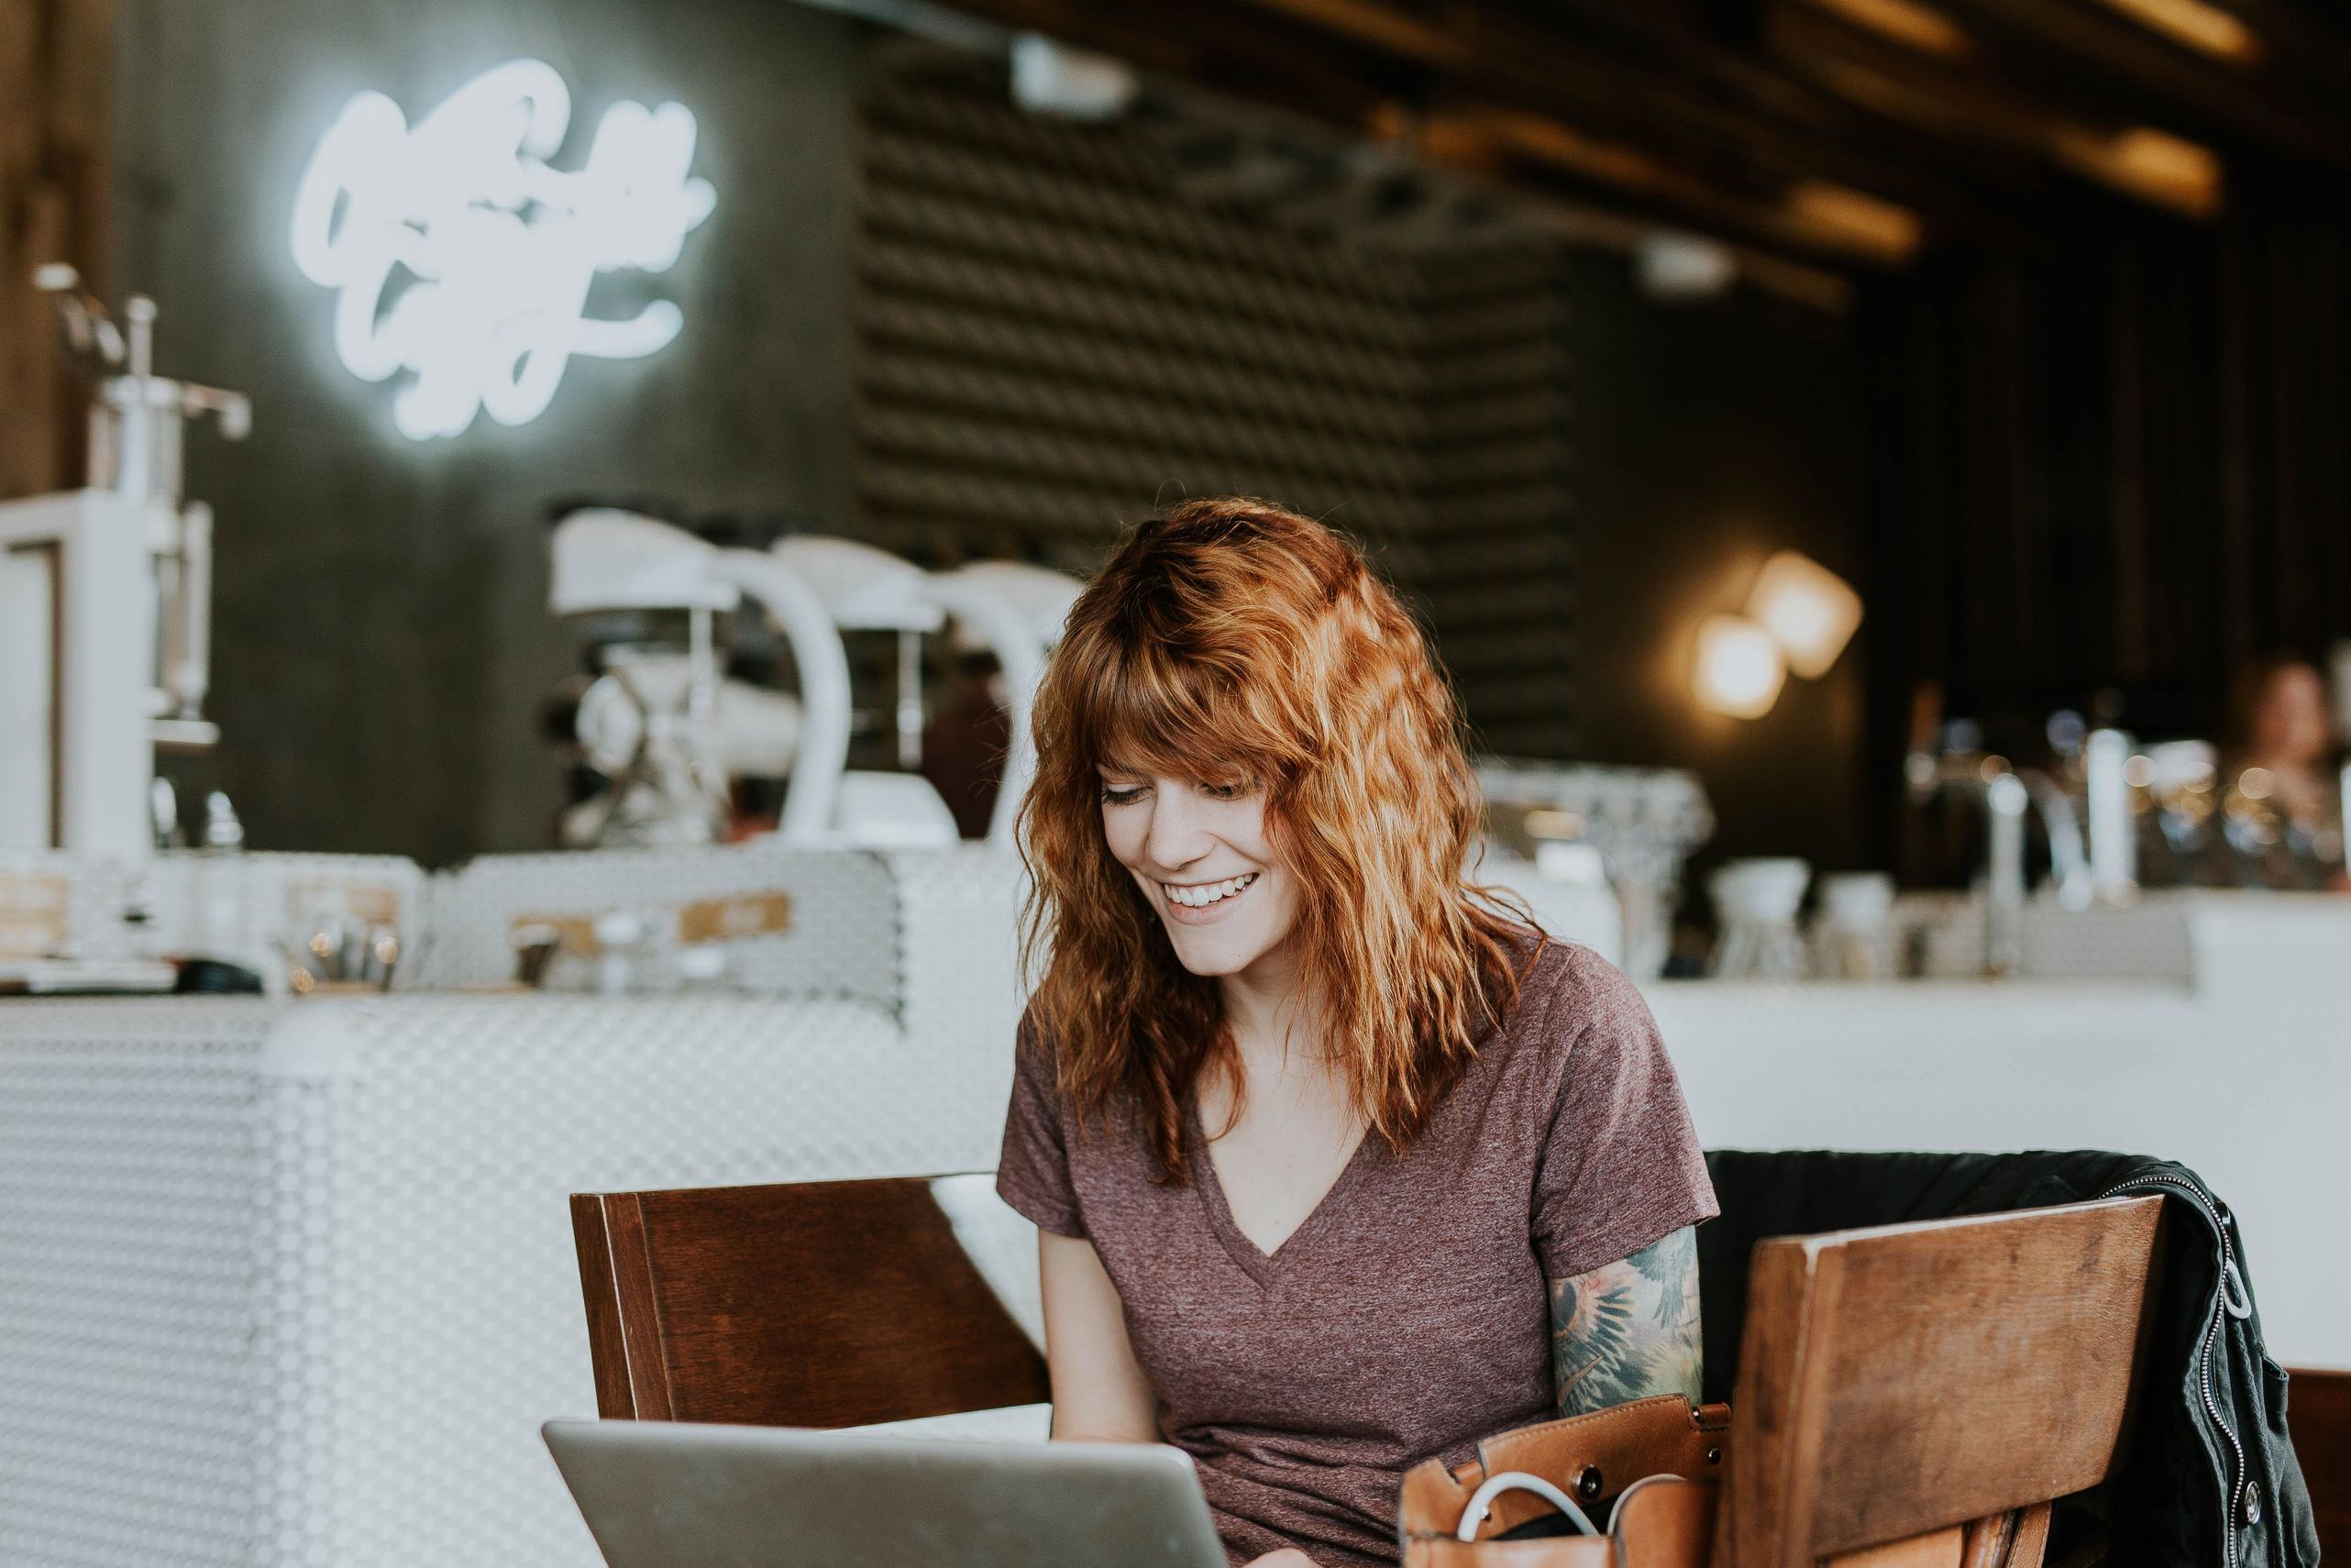 business woman in cafe Photo by Brooke Cagle on Unsplash